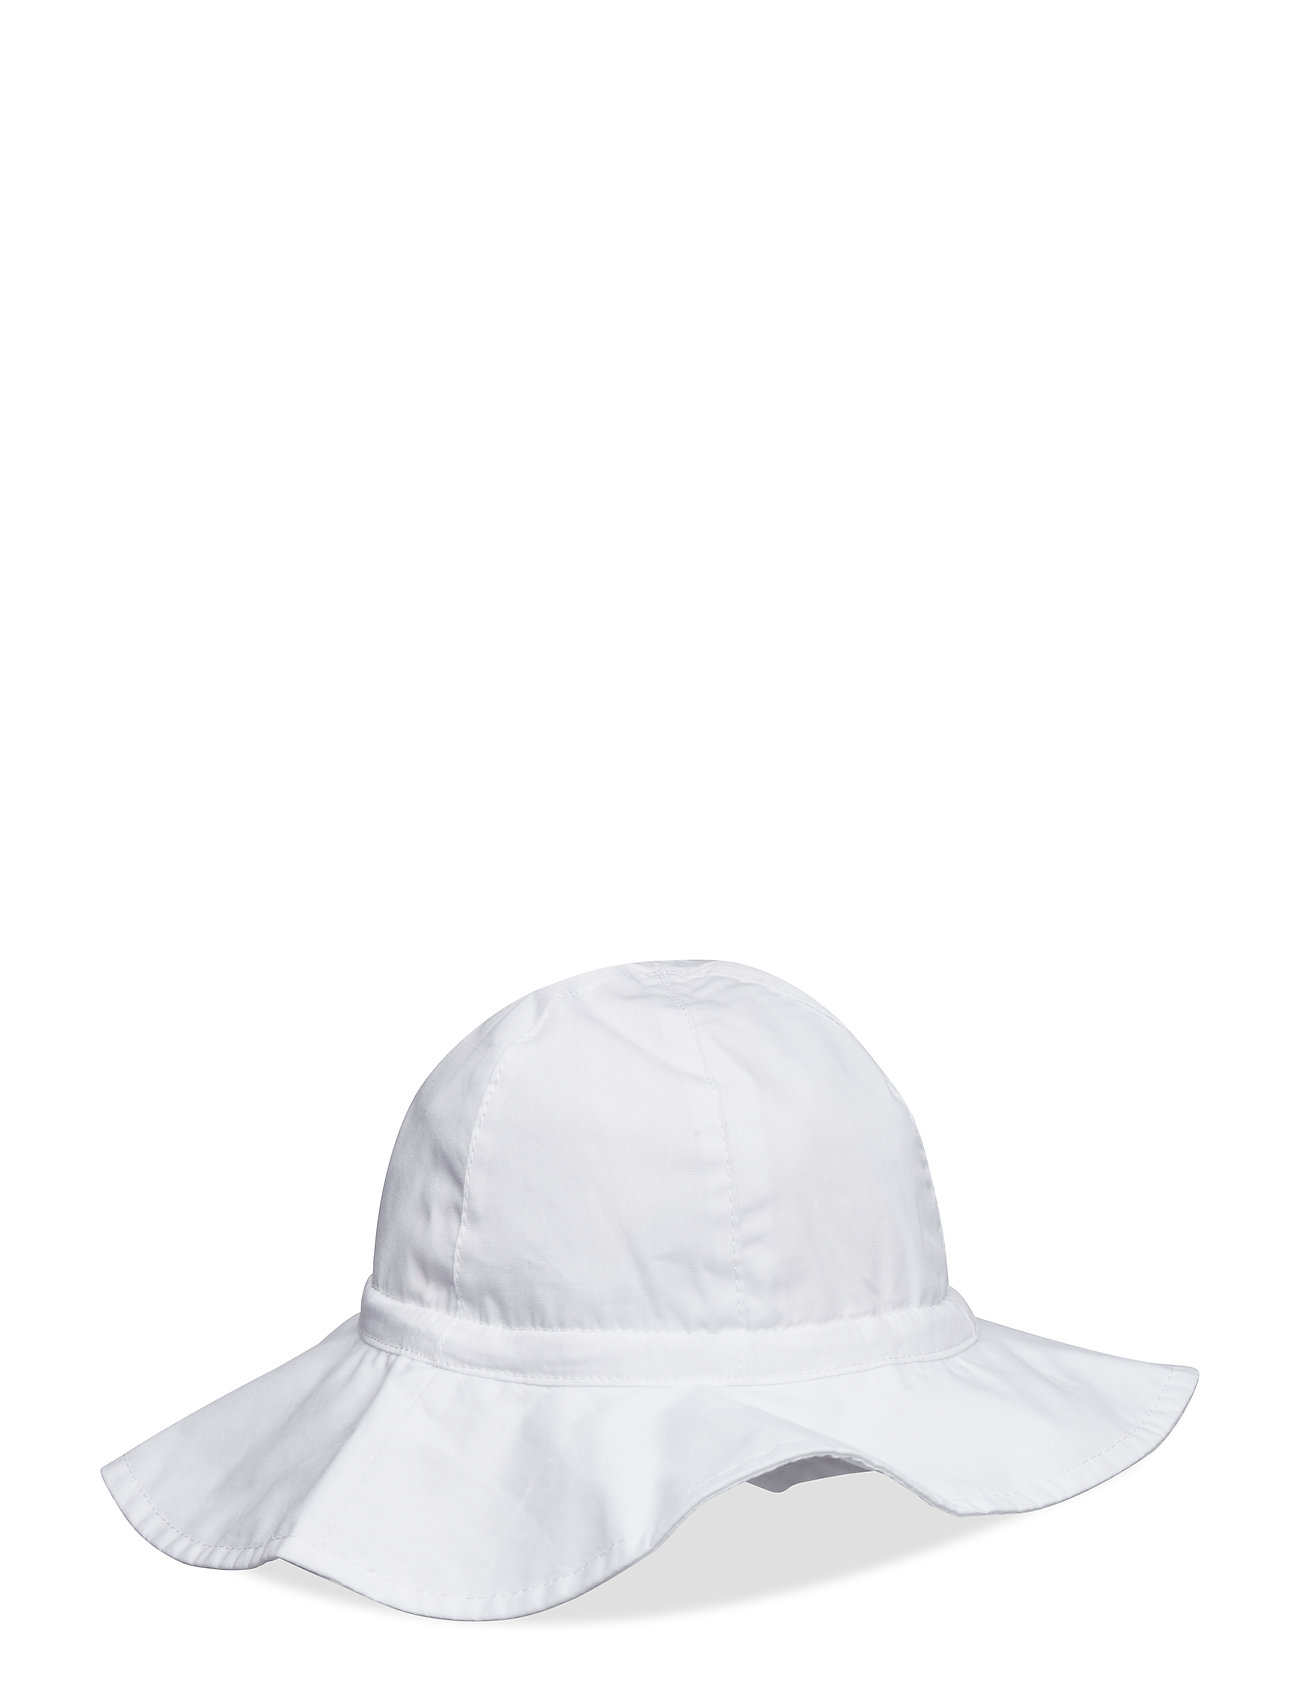 Polarn O. Pyret Sunhat UV Baby - SNOW WHITE